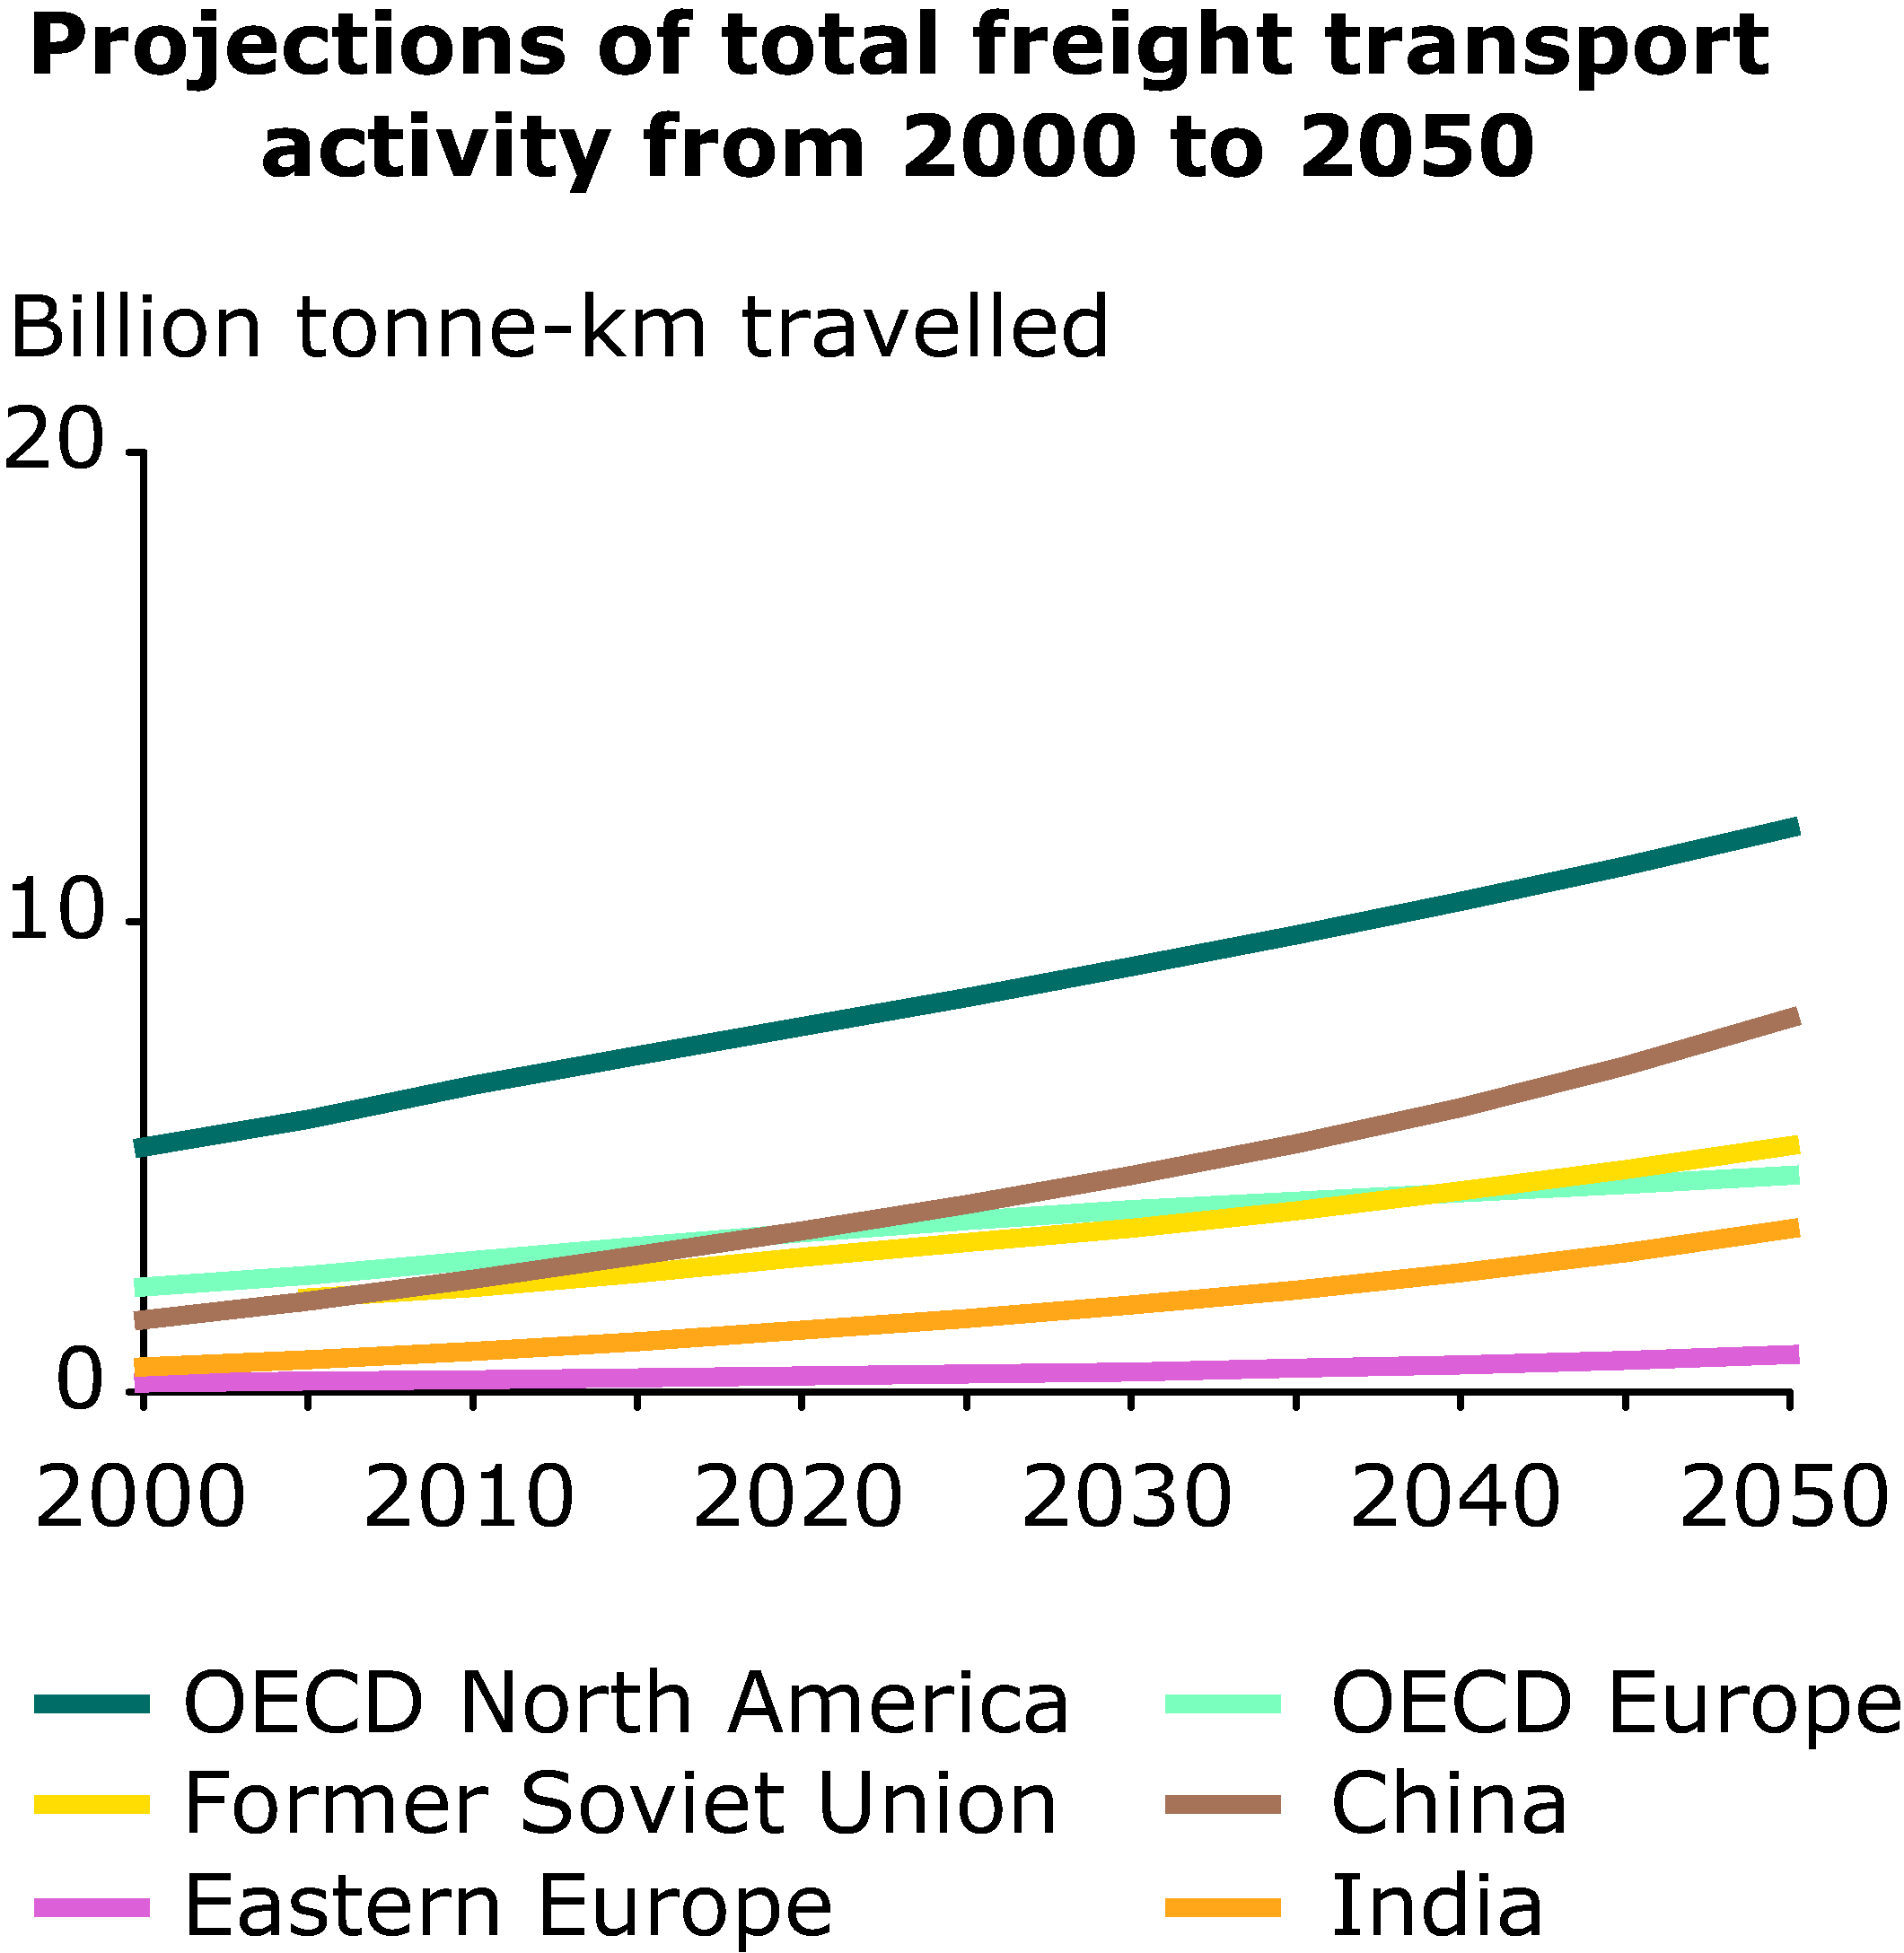 Projections of total freight transport activity from 2000 to 2050